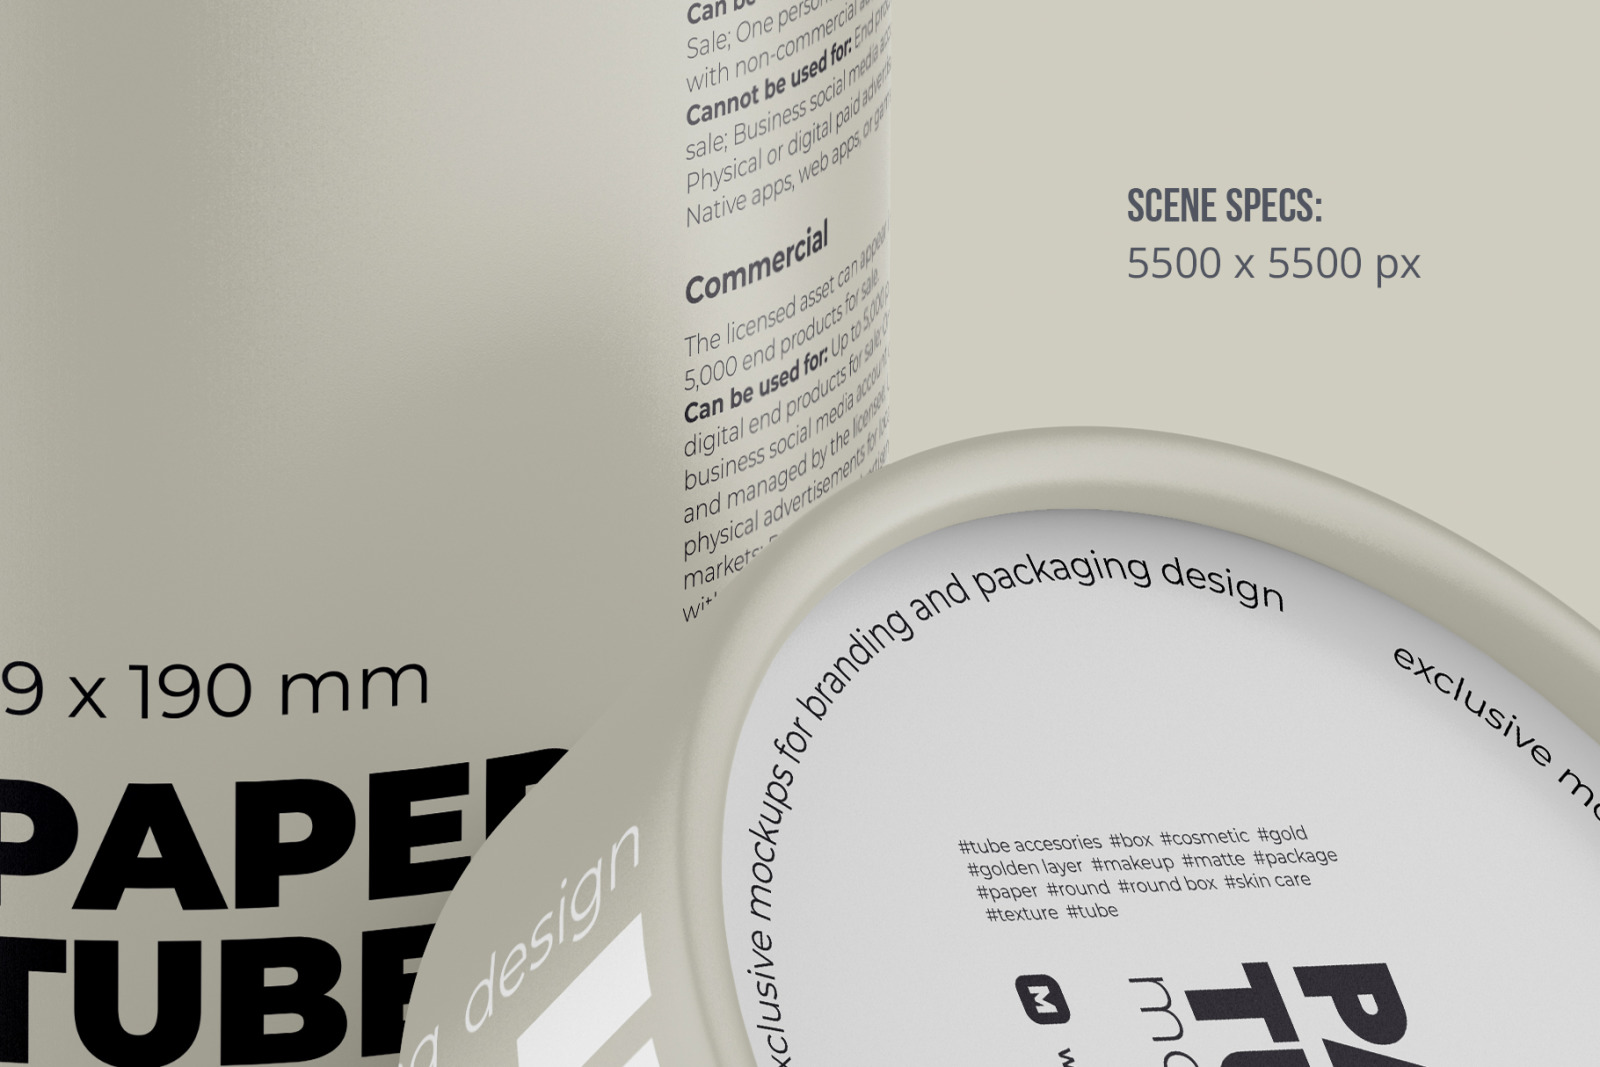 Opened Paper Tube Mockup 99x190mm